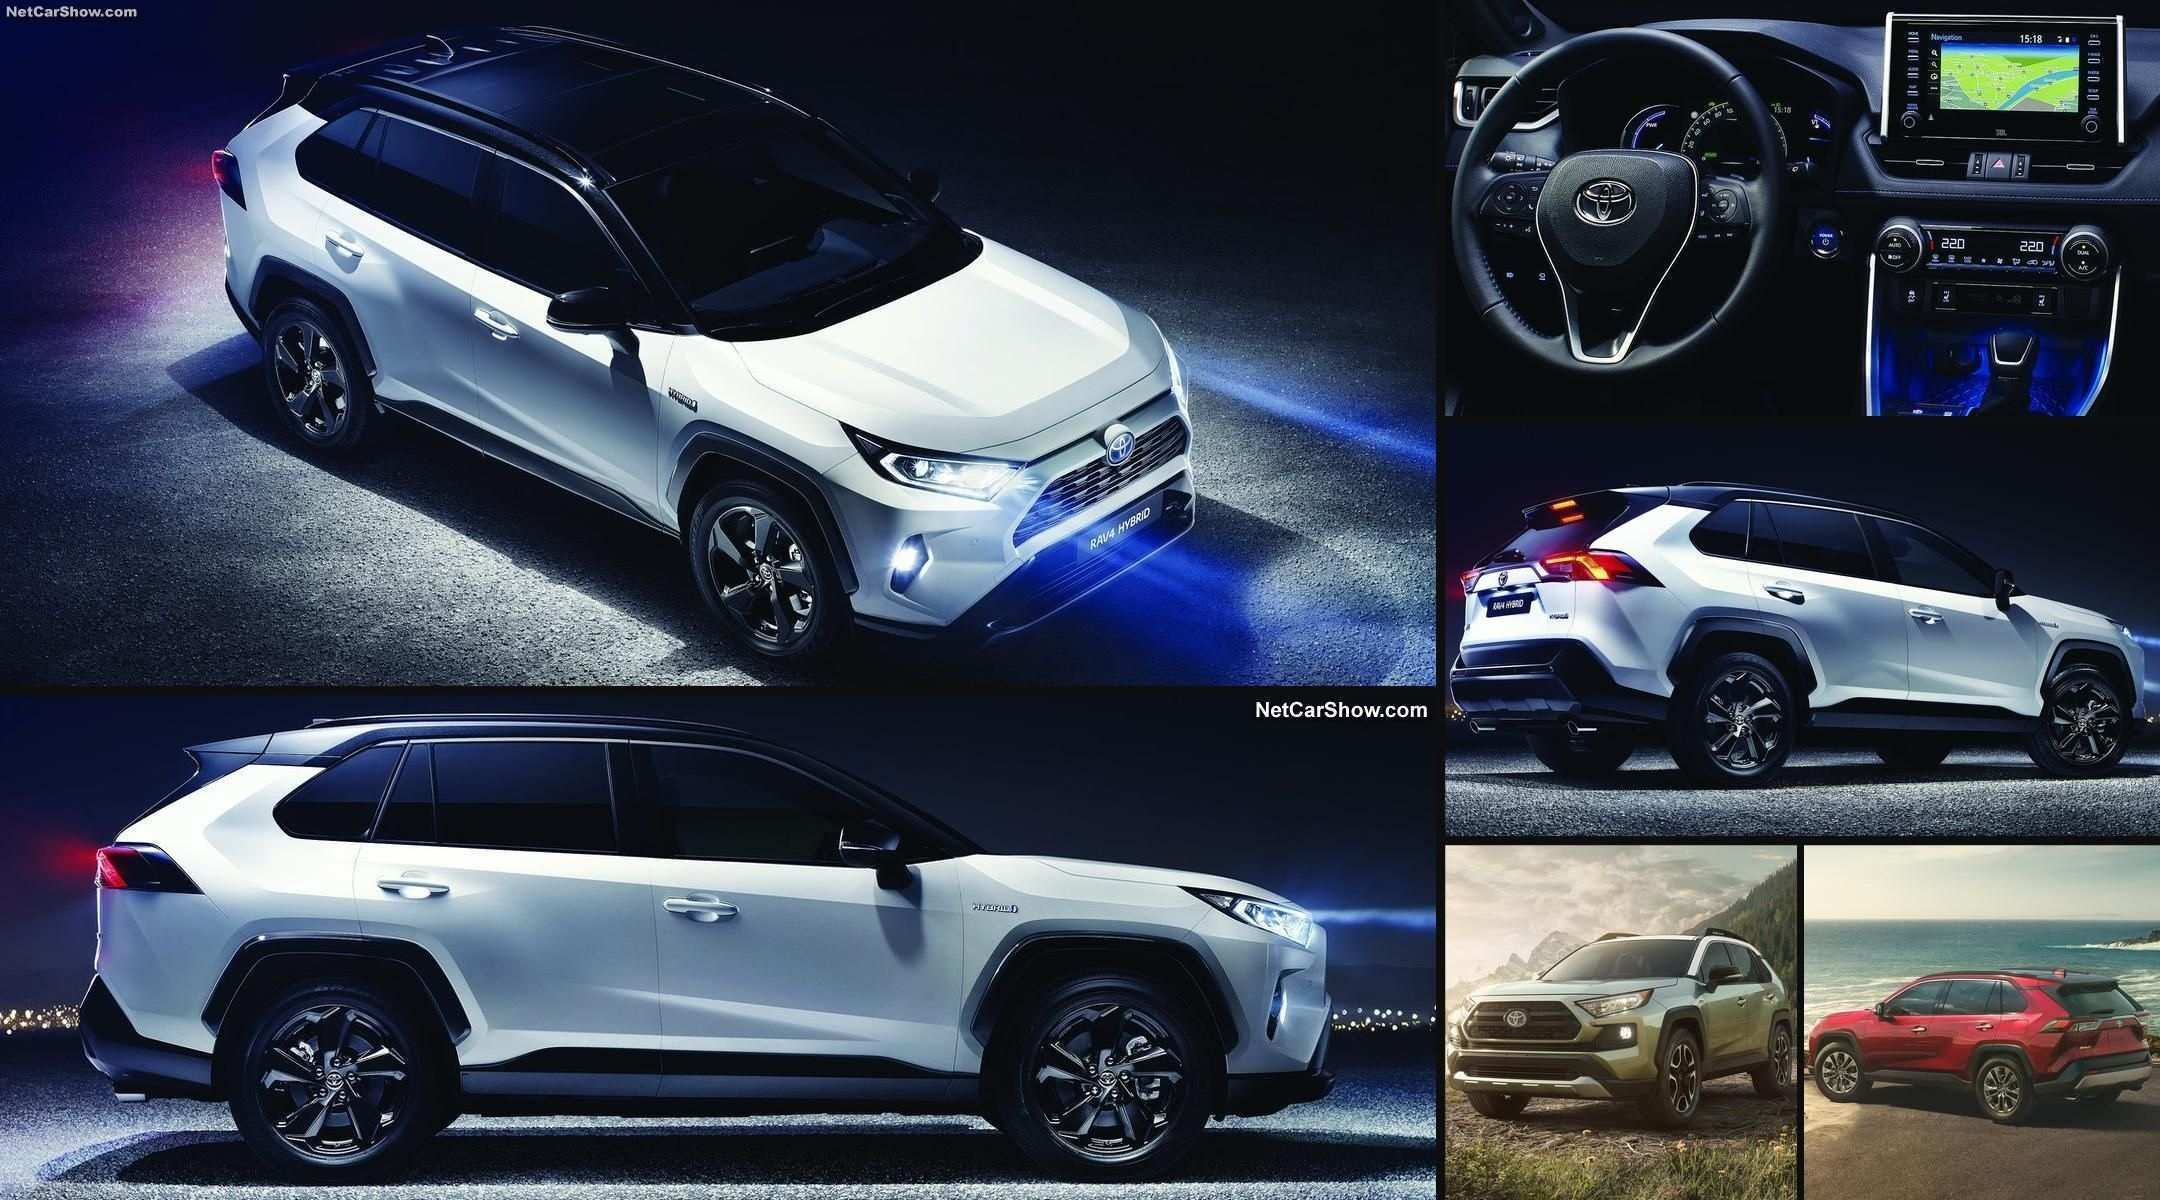 67 New 2020 Toyota Rav4 Exterior First Drive by 2020 Toyota Rav4 Exterior